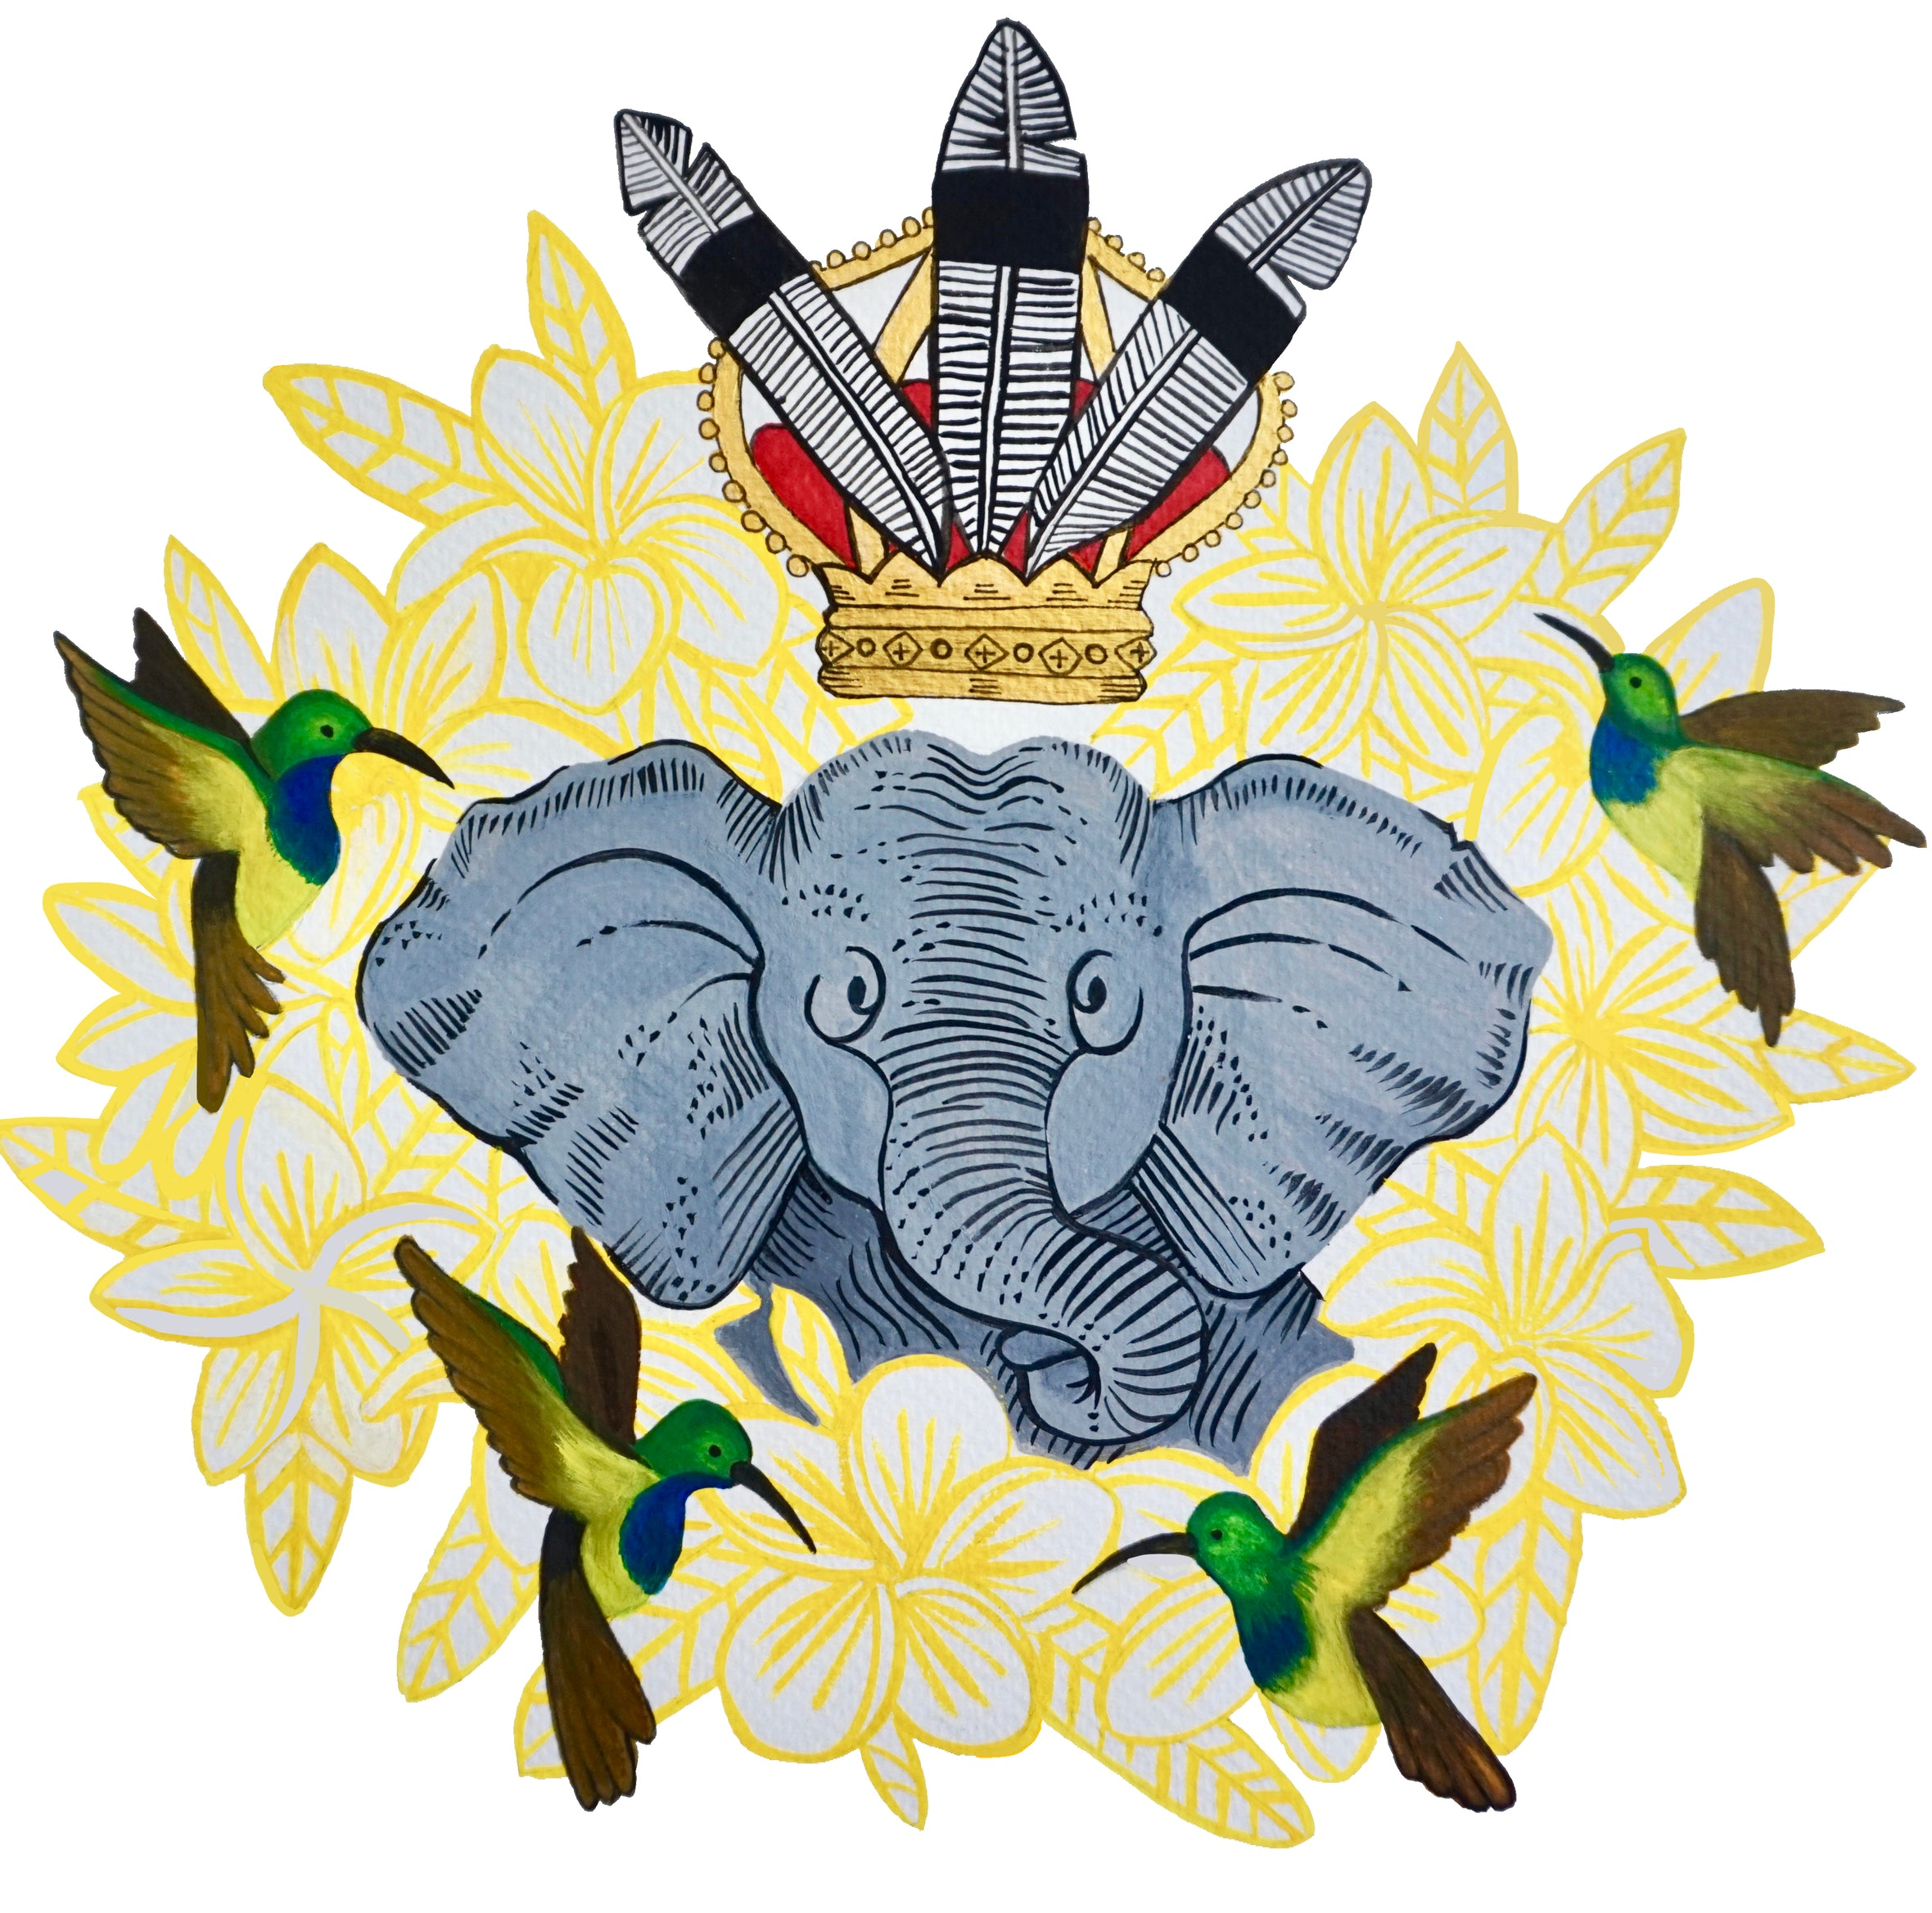 Pygmy Elephant Art